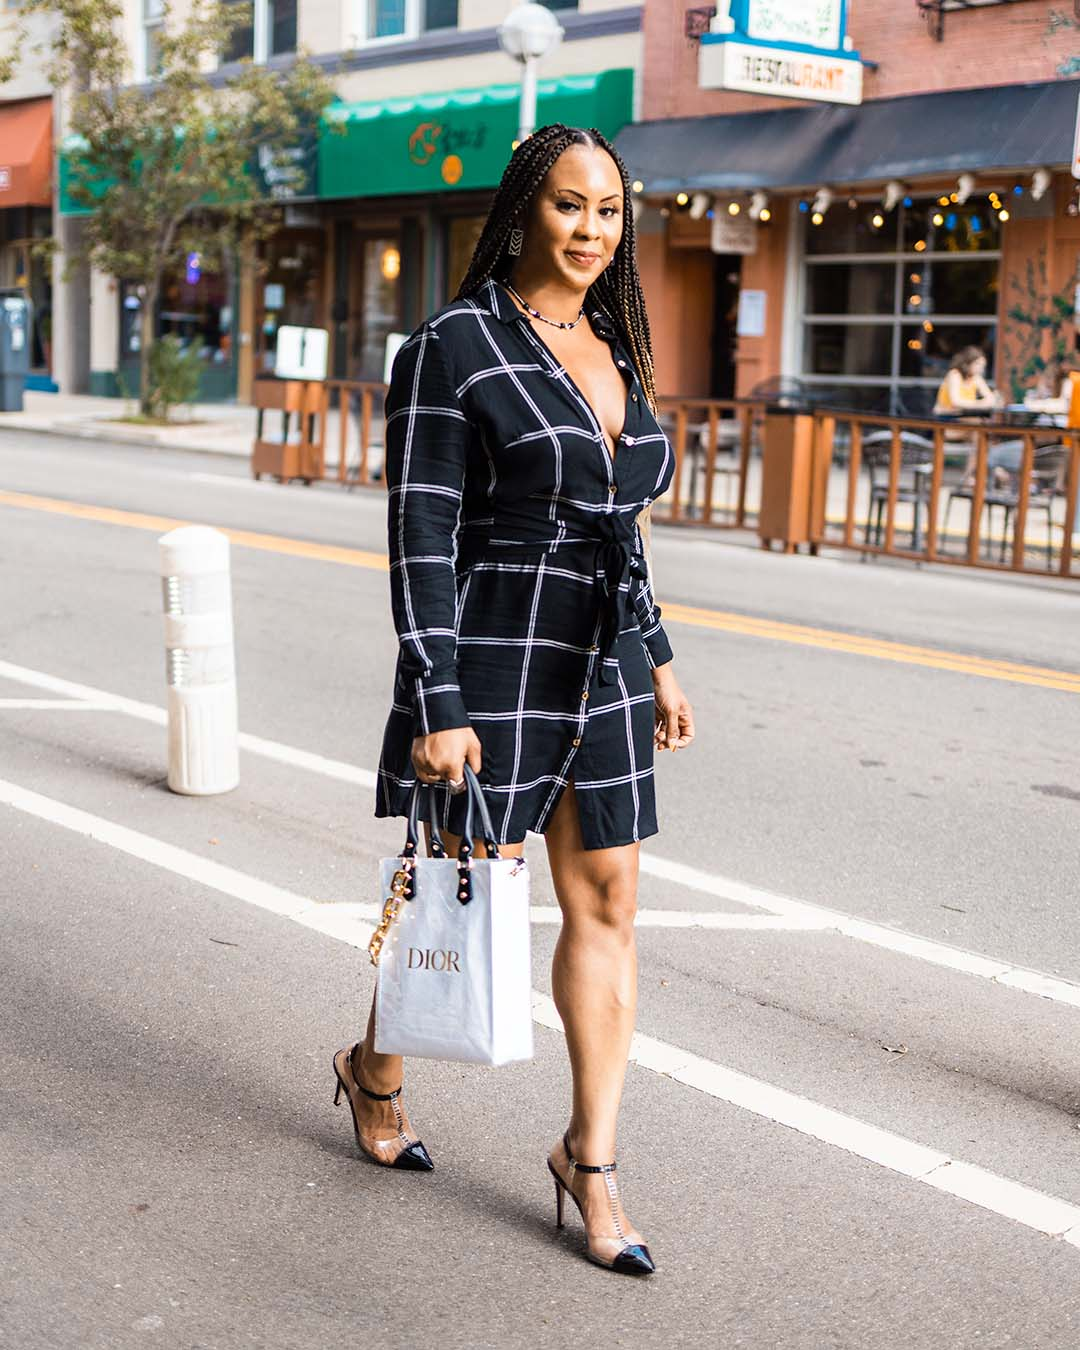 black girl walking in street with black and white stripe shirt dress, holding a Dior shopping bag and wearing black and clear high heels.